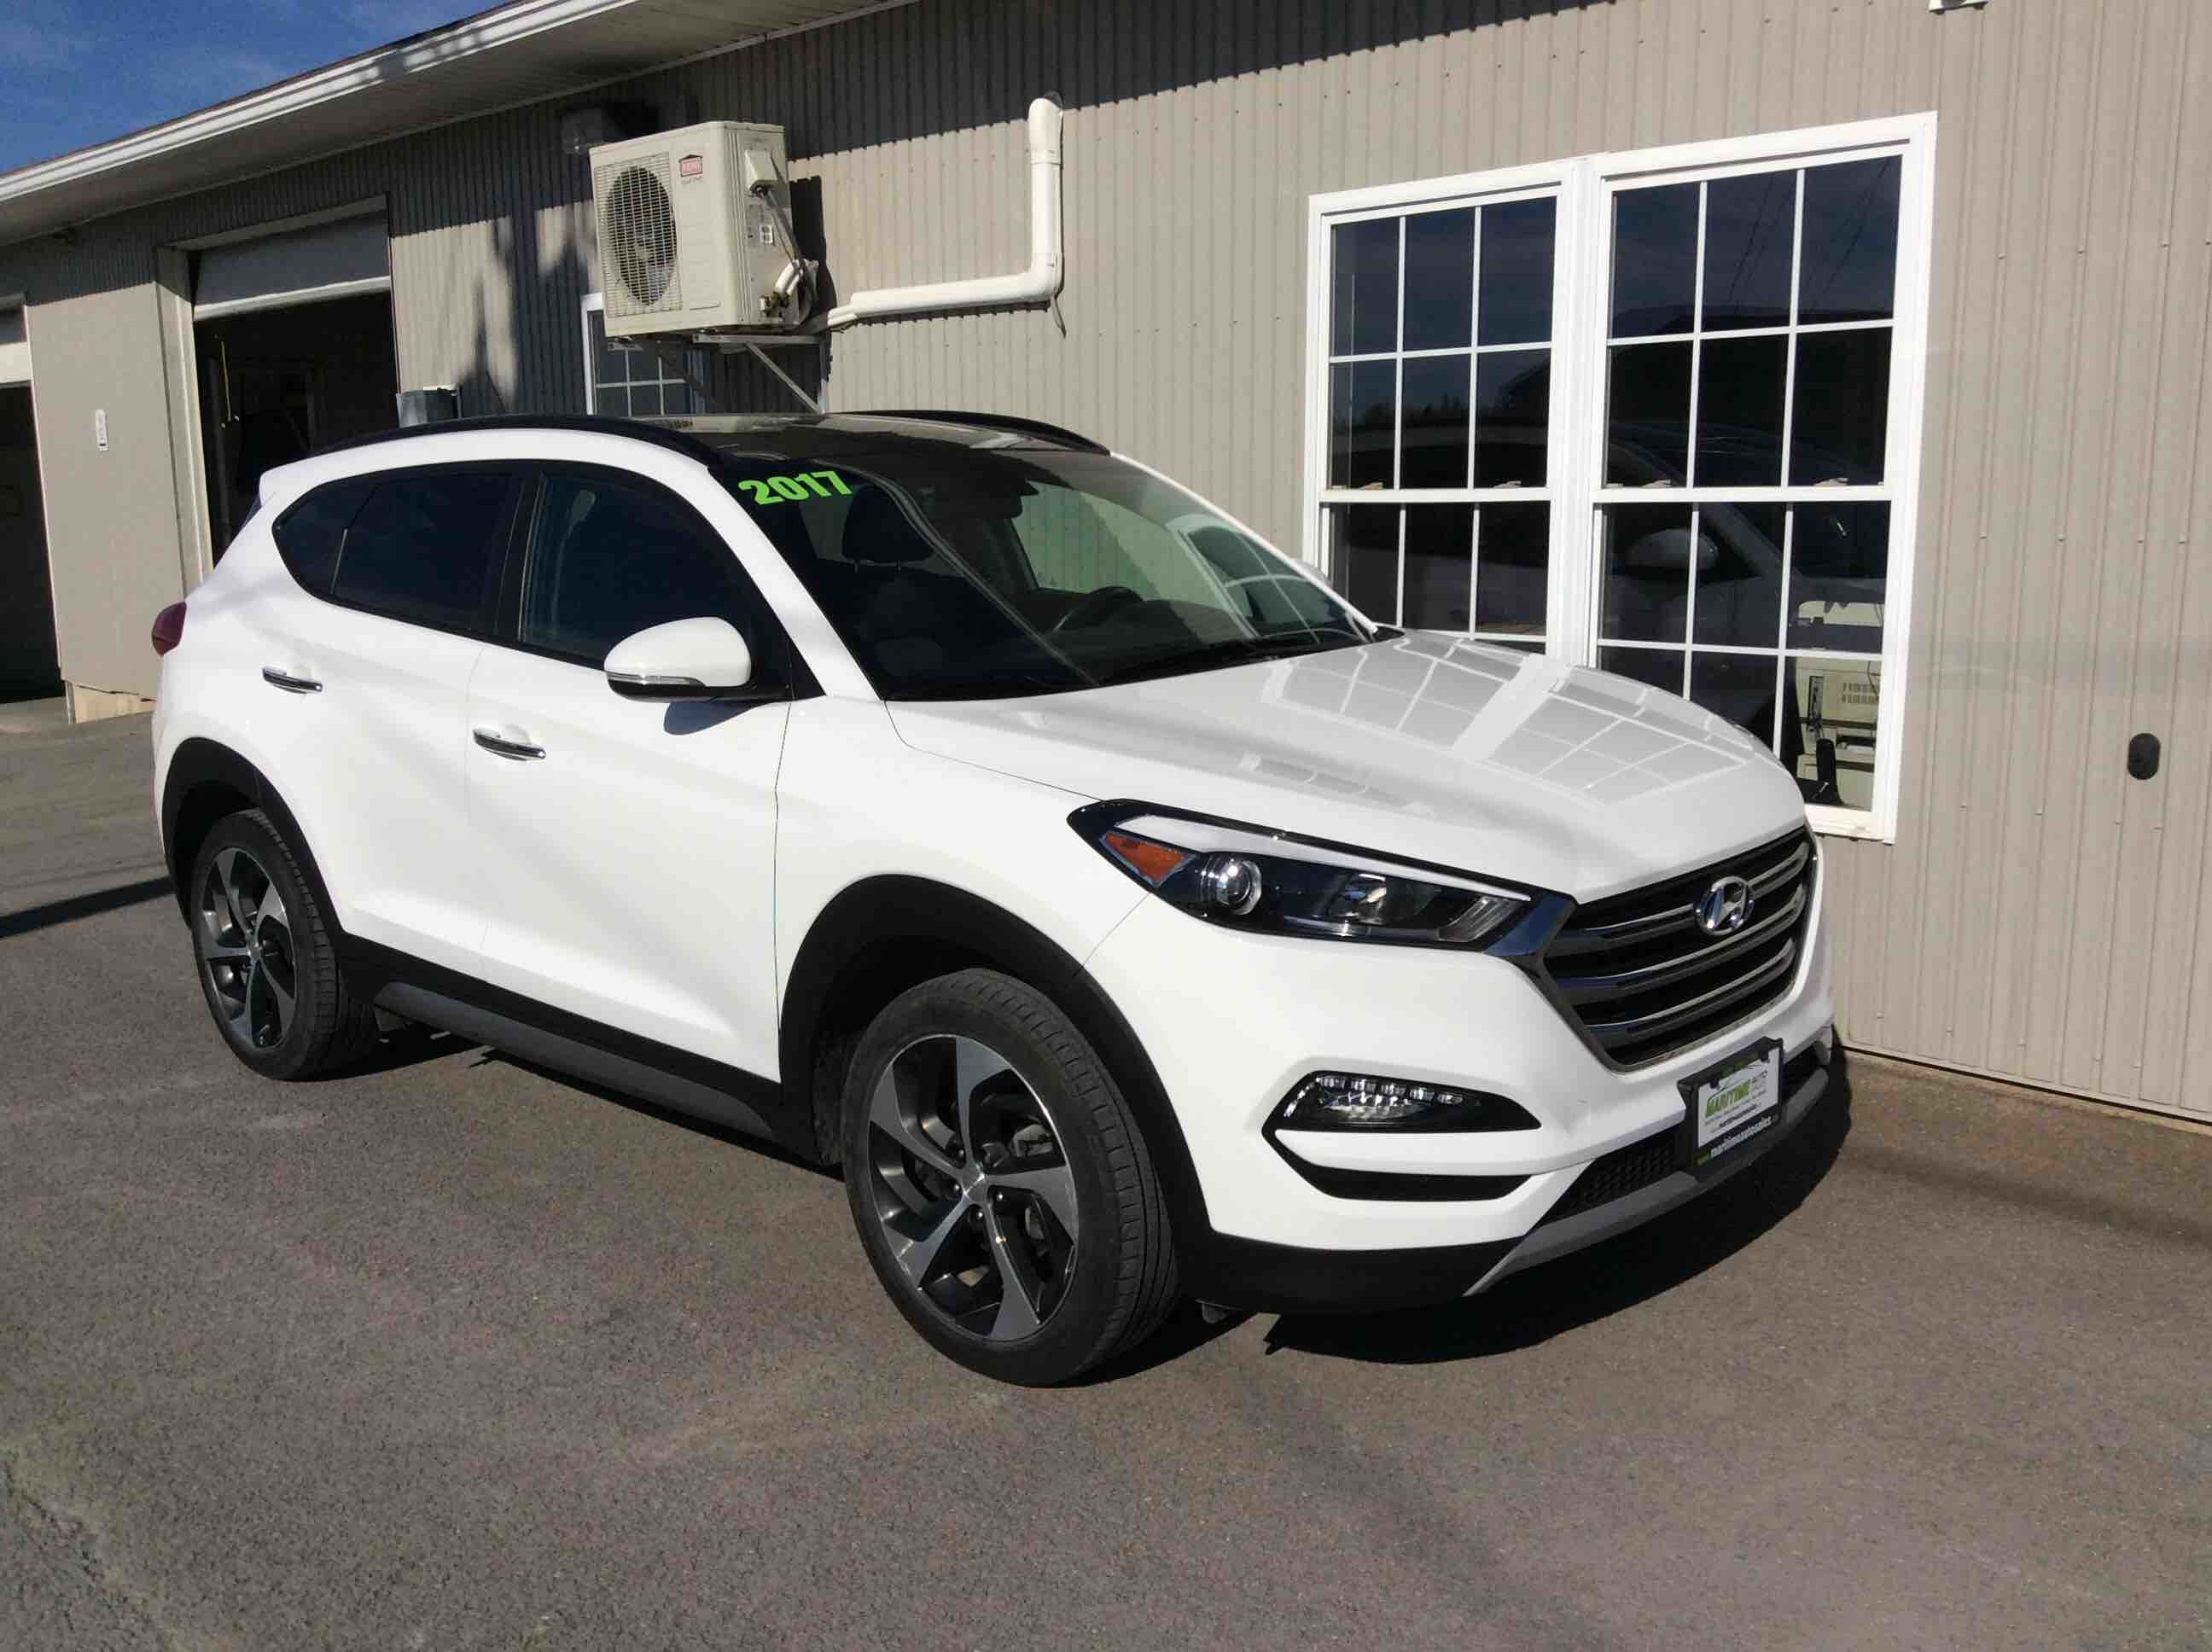 suv hyundai santa ny for northtown in featured turbo pre sport awd vehicles fe htm amherst sale owned